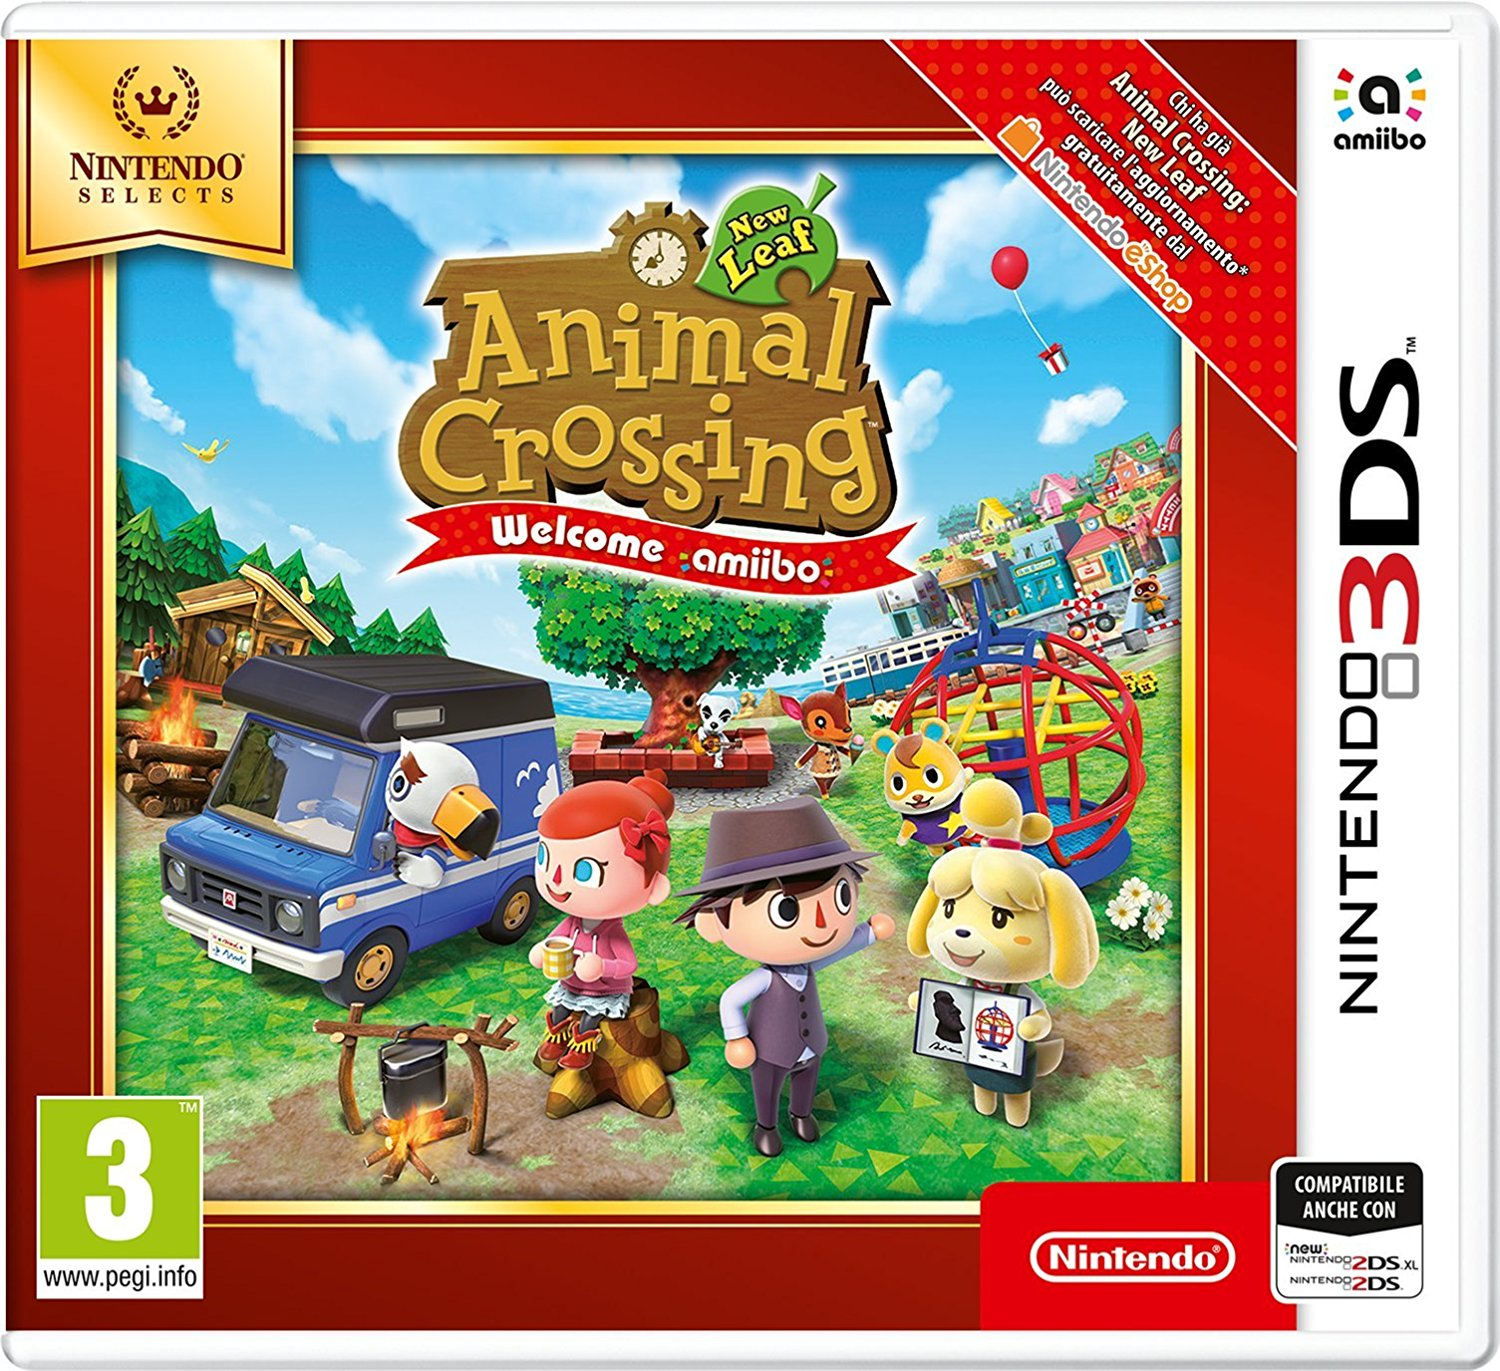 Animal Crossing: New Leaf (Welcome amiibo) – Nintendo Selects